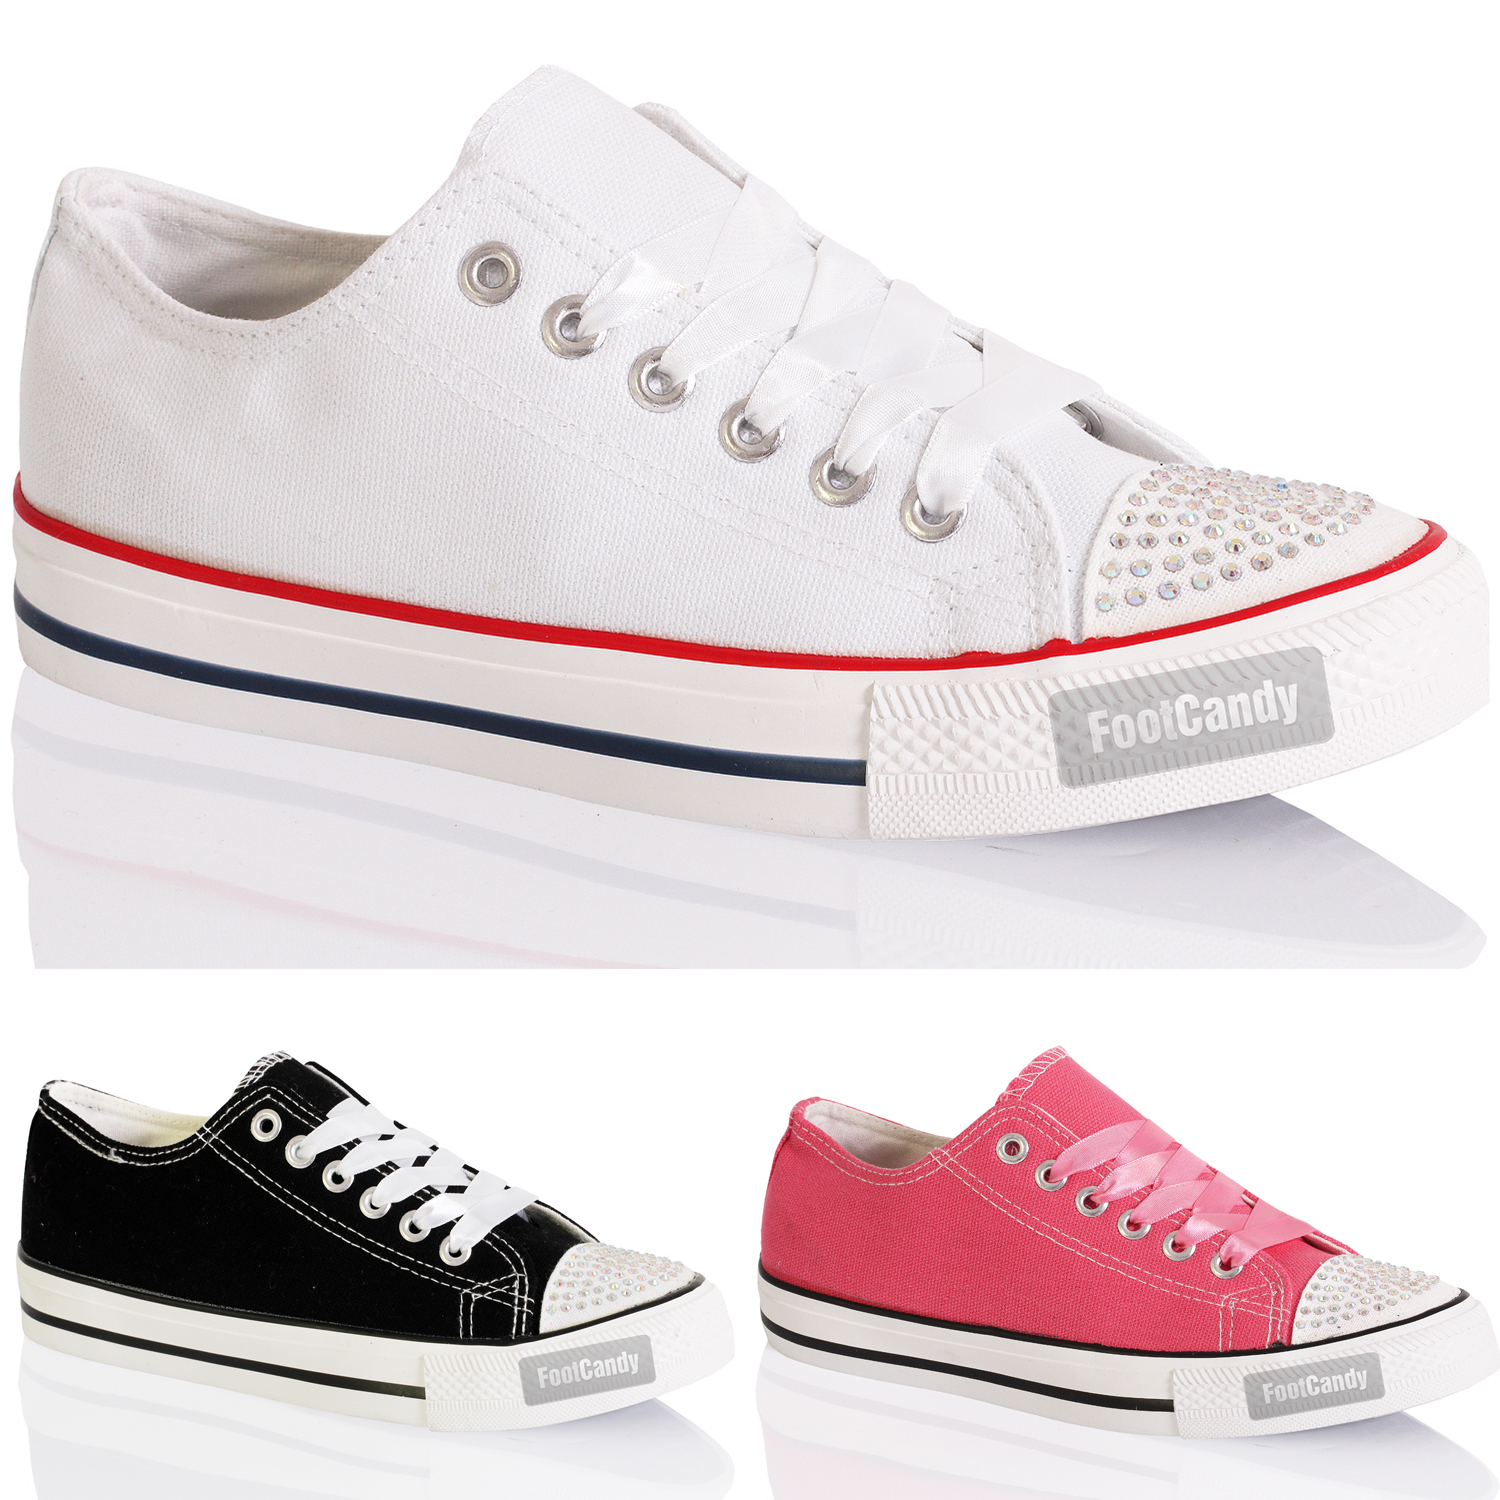 WOMENS-LADIES-CUSTOMISED-LO-TOP-CANVAS-PLIMSOLES-DIAMANTE-TRAINERS-SHOES-SIZE